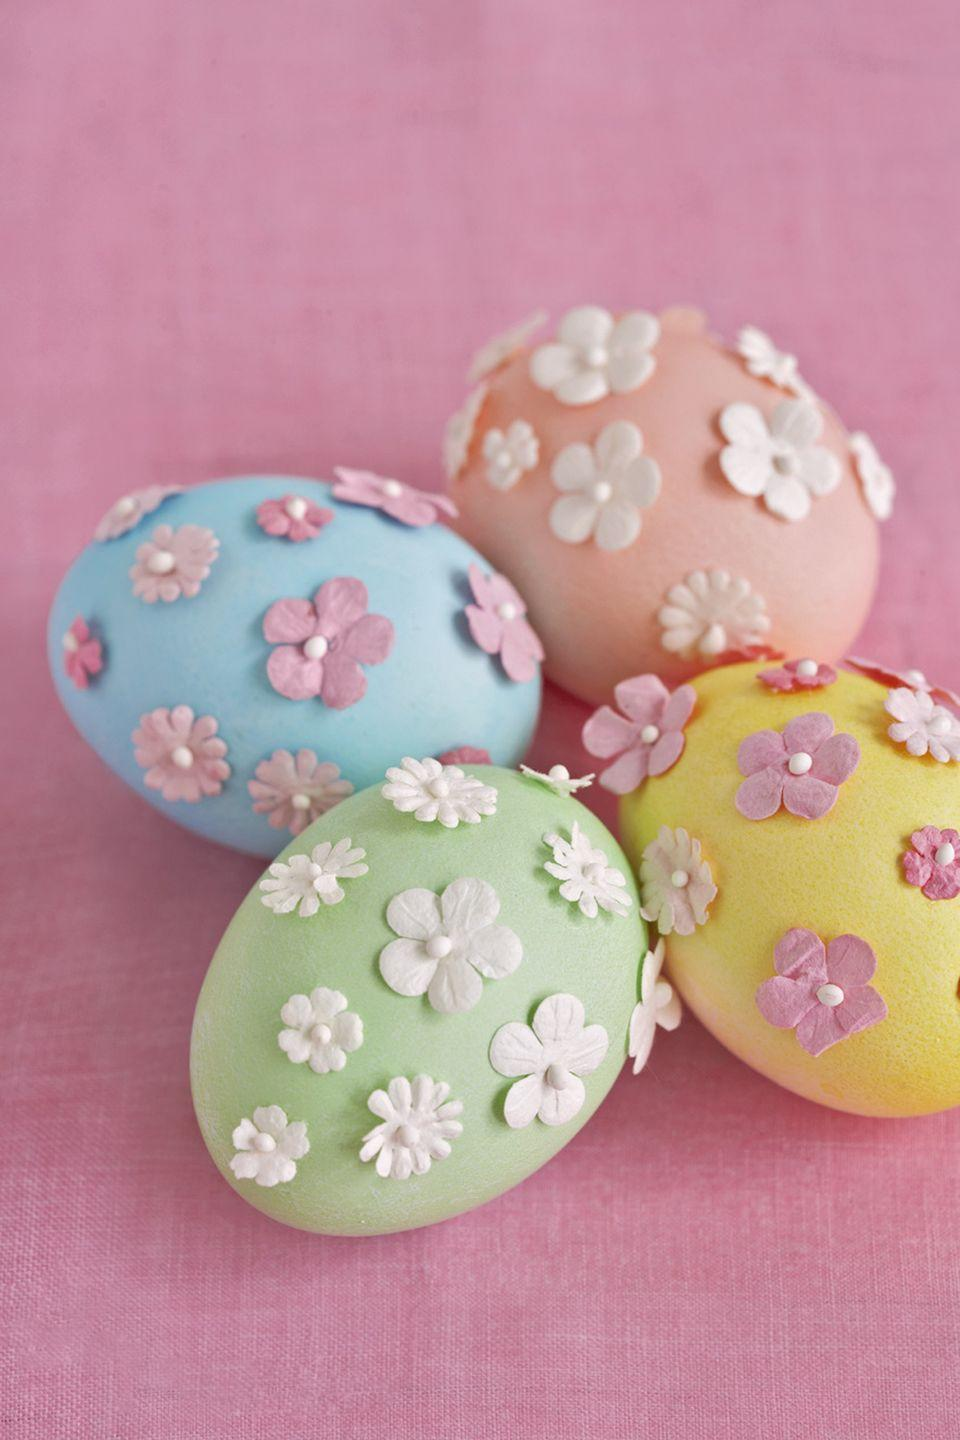 <p>Make these pastel beauties last for years by first blowing out the egg's whites and yolks.</p><p><strong>Step 1:</strong> Insert a long needle into the bottom of each egg; make a small hole, then make a slightly larger one in the top.</p><p><strong>Step 2:</strong> Move the needle around inside the shell to break the yolk.</p><p><strong>Step 3:</strong> Blow over the smaller hole—feel free to use a straw if you don't want to touch the egg directly—until the liquid drips out of the larger hole.</p><p><strong>Step 4:</strong> Run the egg under water. Blow the water out, and let the shell dry overnight.</p><p><strong>Step 5:</strong> After coloring the egg, attach fabric scrapbooking flowers with tiny dots of glue. Lightly press each flower with your finger, then release.</p>